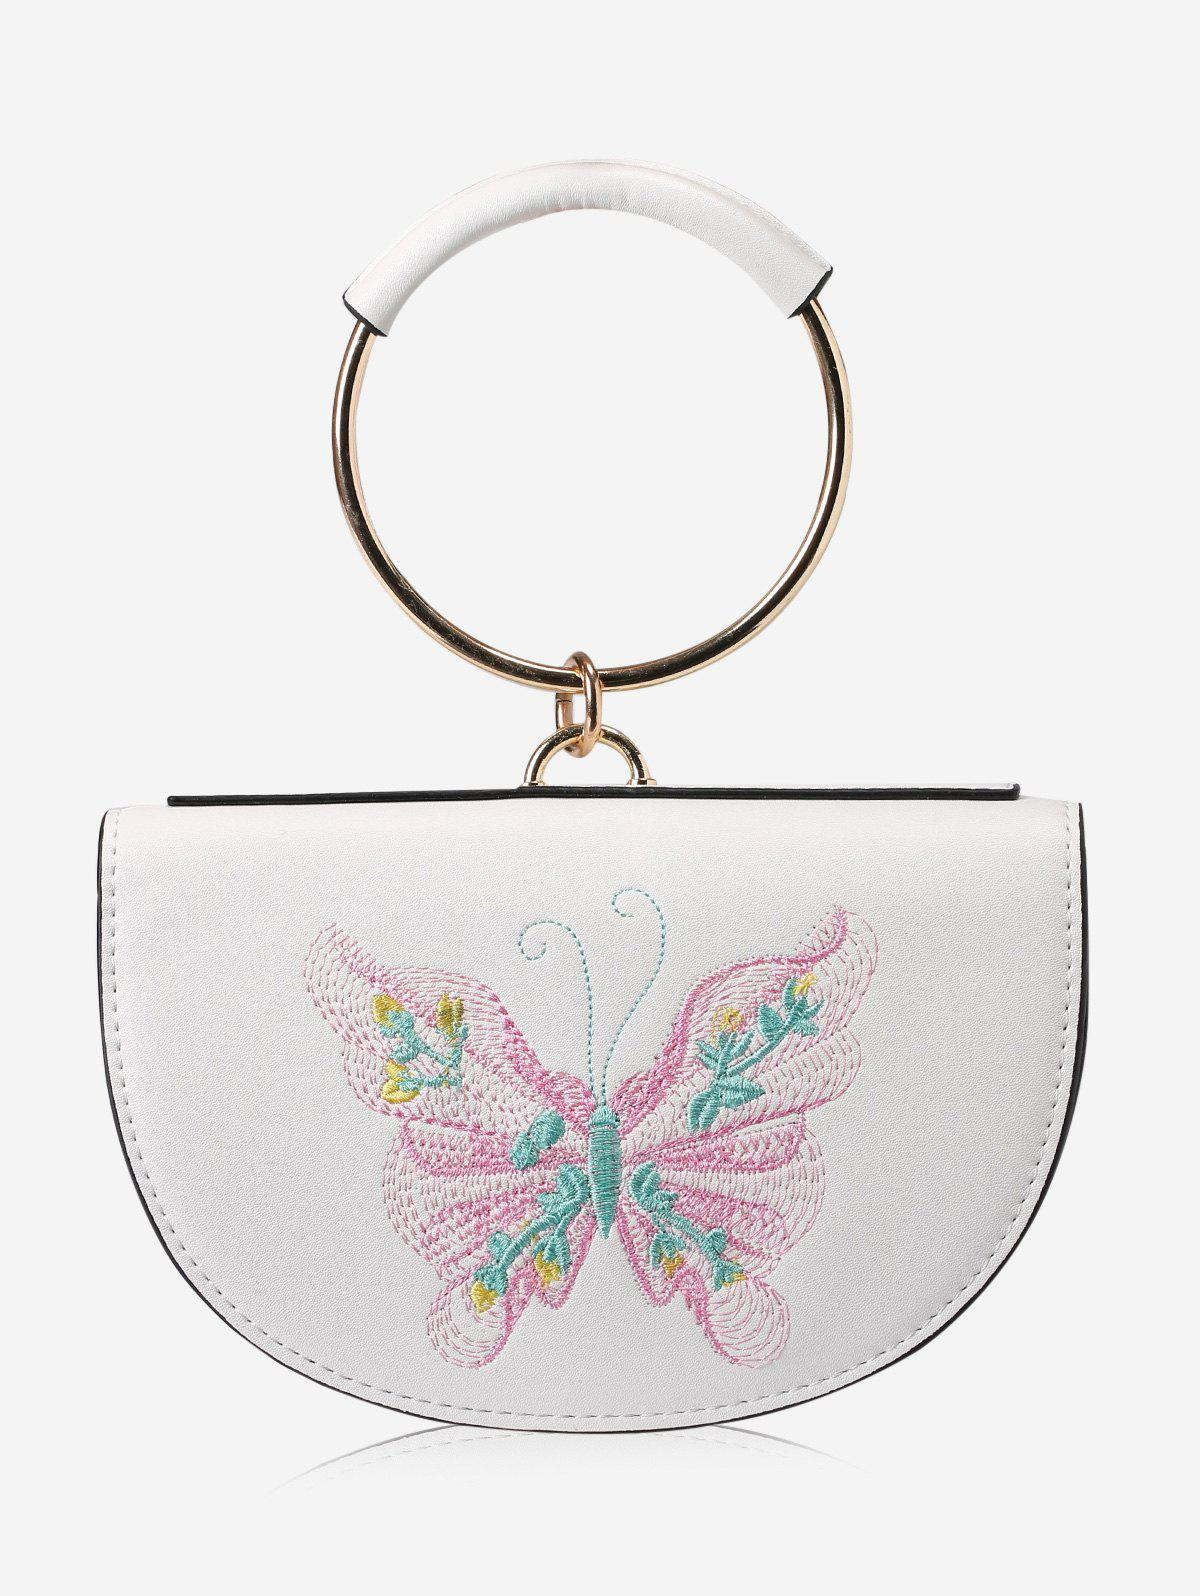 Metal Ring Faux Leather Embroidery Tote Bag - PINK/WHITE